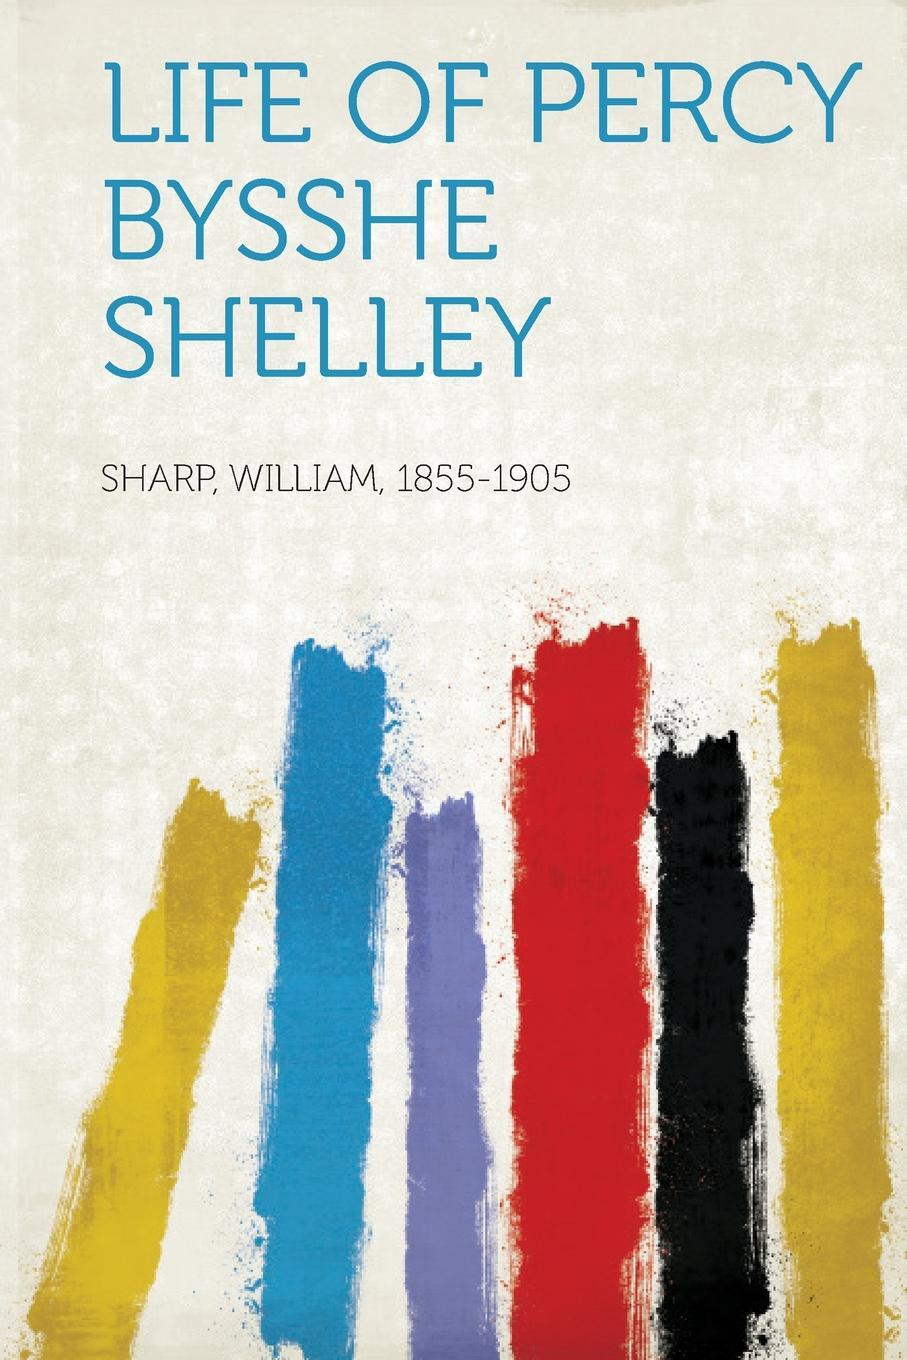 Sharp William 1855-1905. Life of Percy Bysshe Shelley